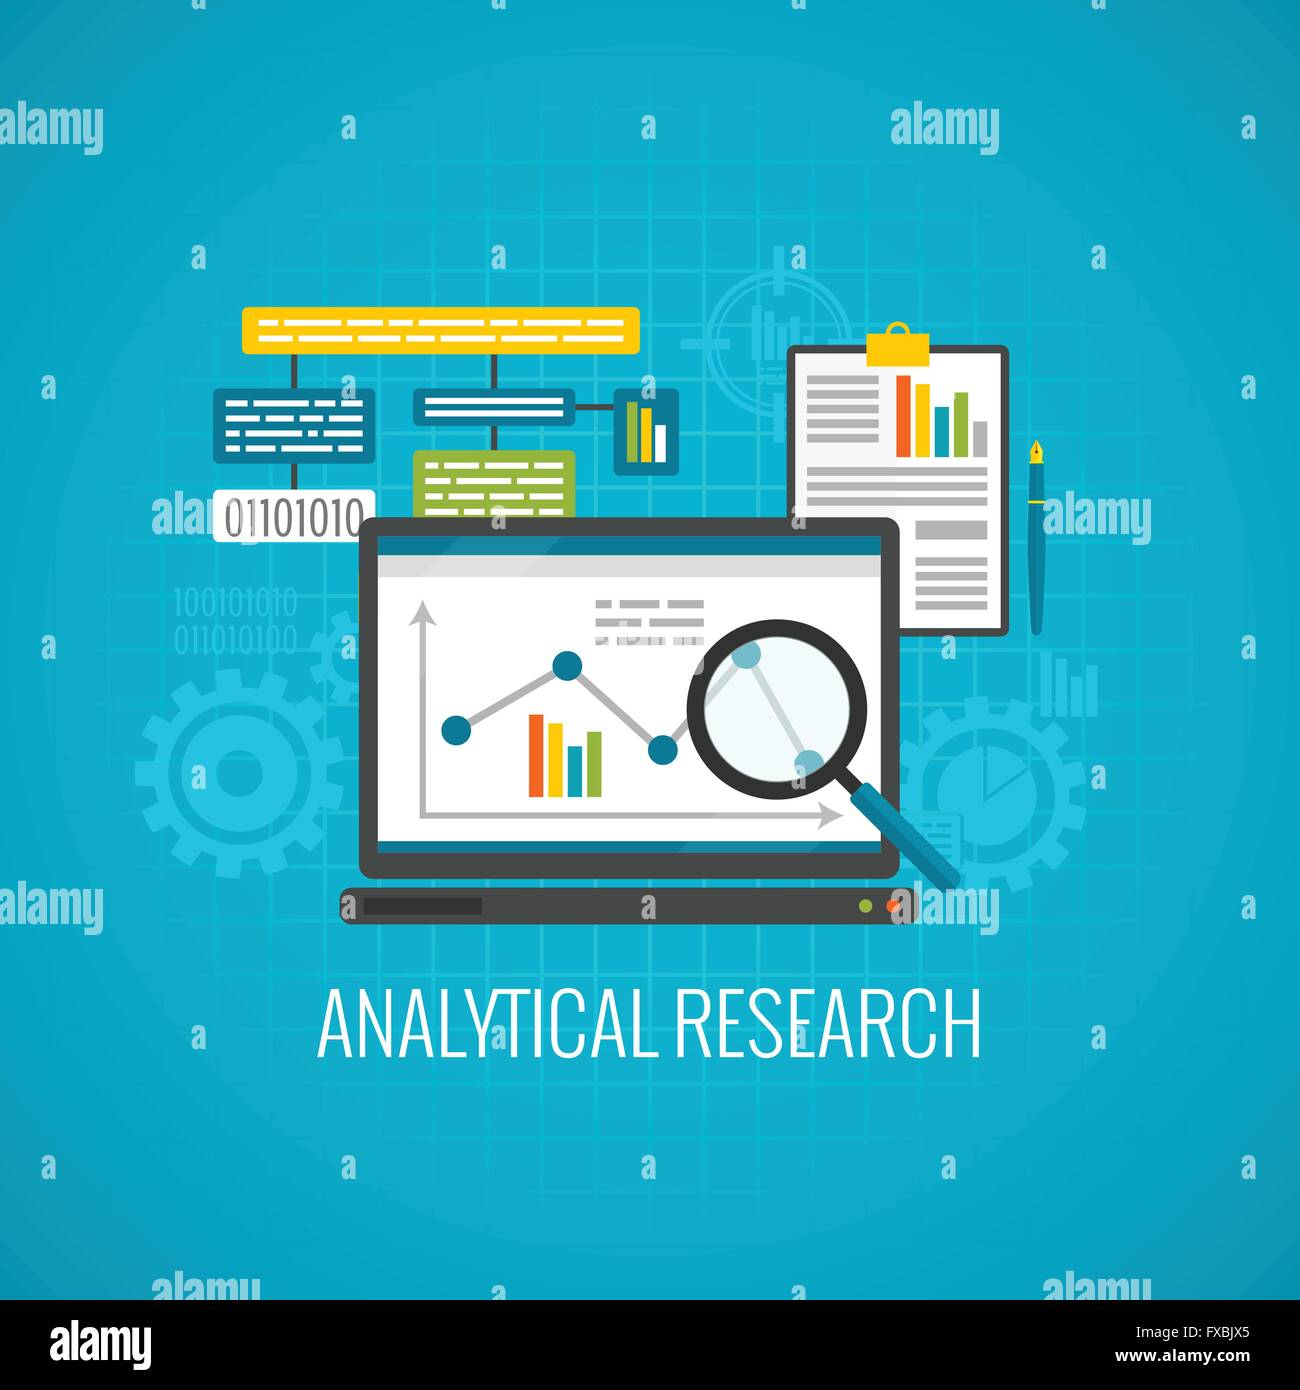 Data and analytical research icon - Stock Image